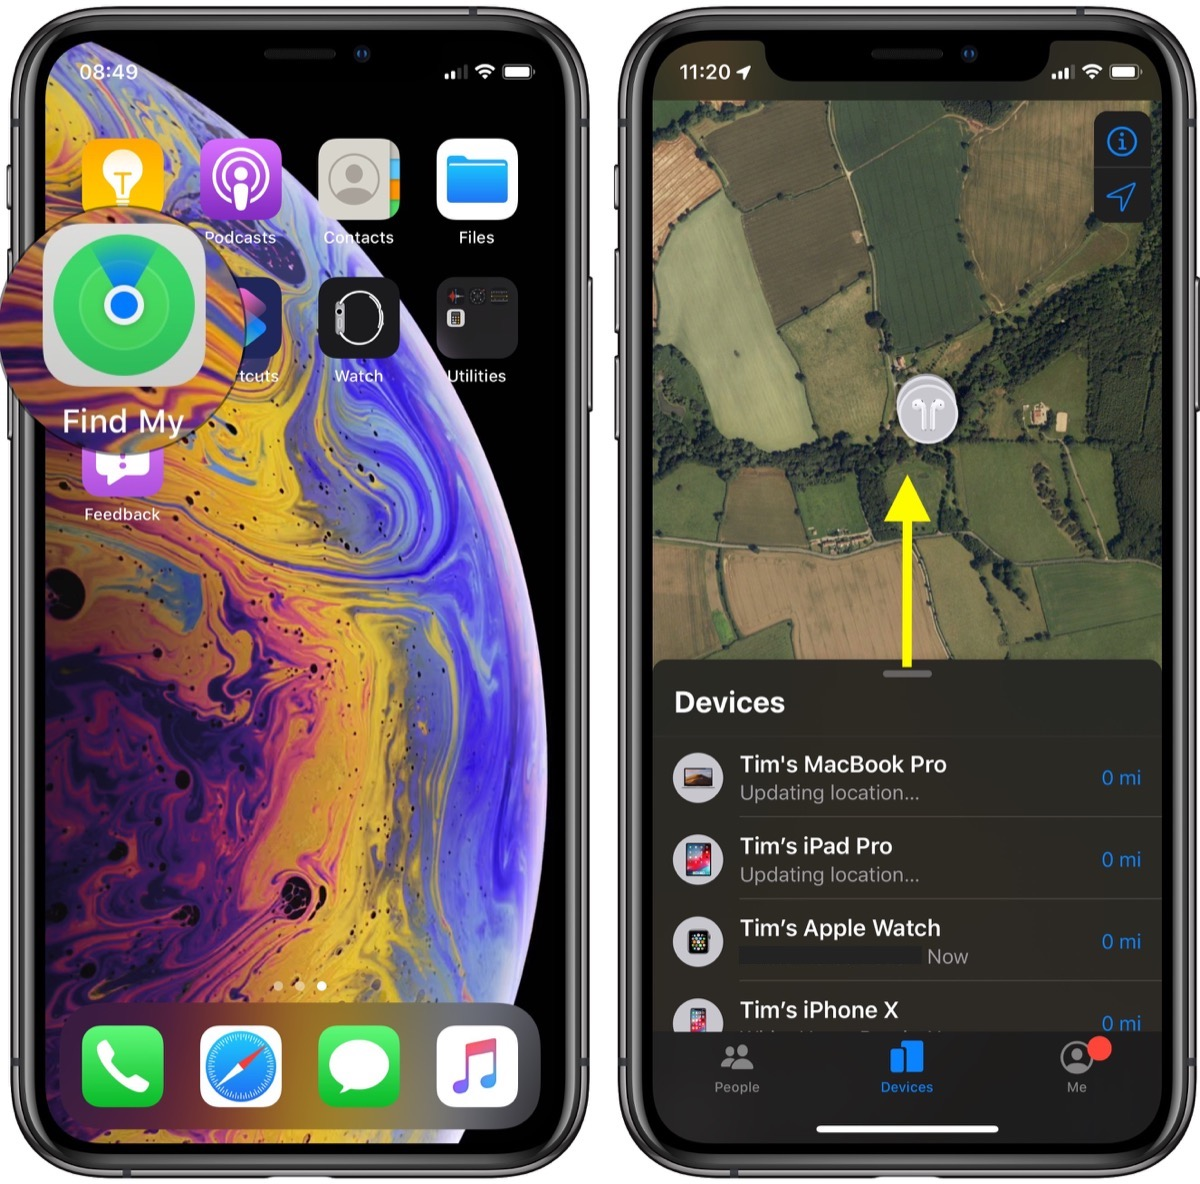 How to Locate a Lost iPhone or Other Apple Device With Find My